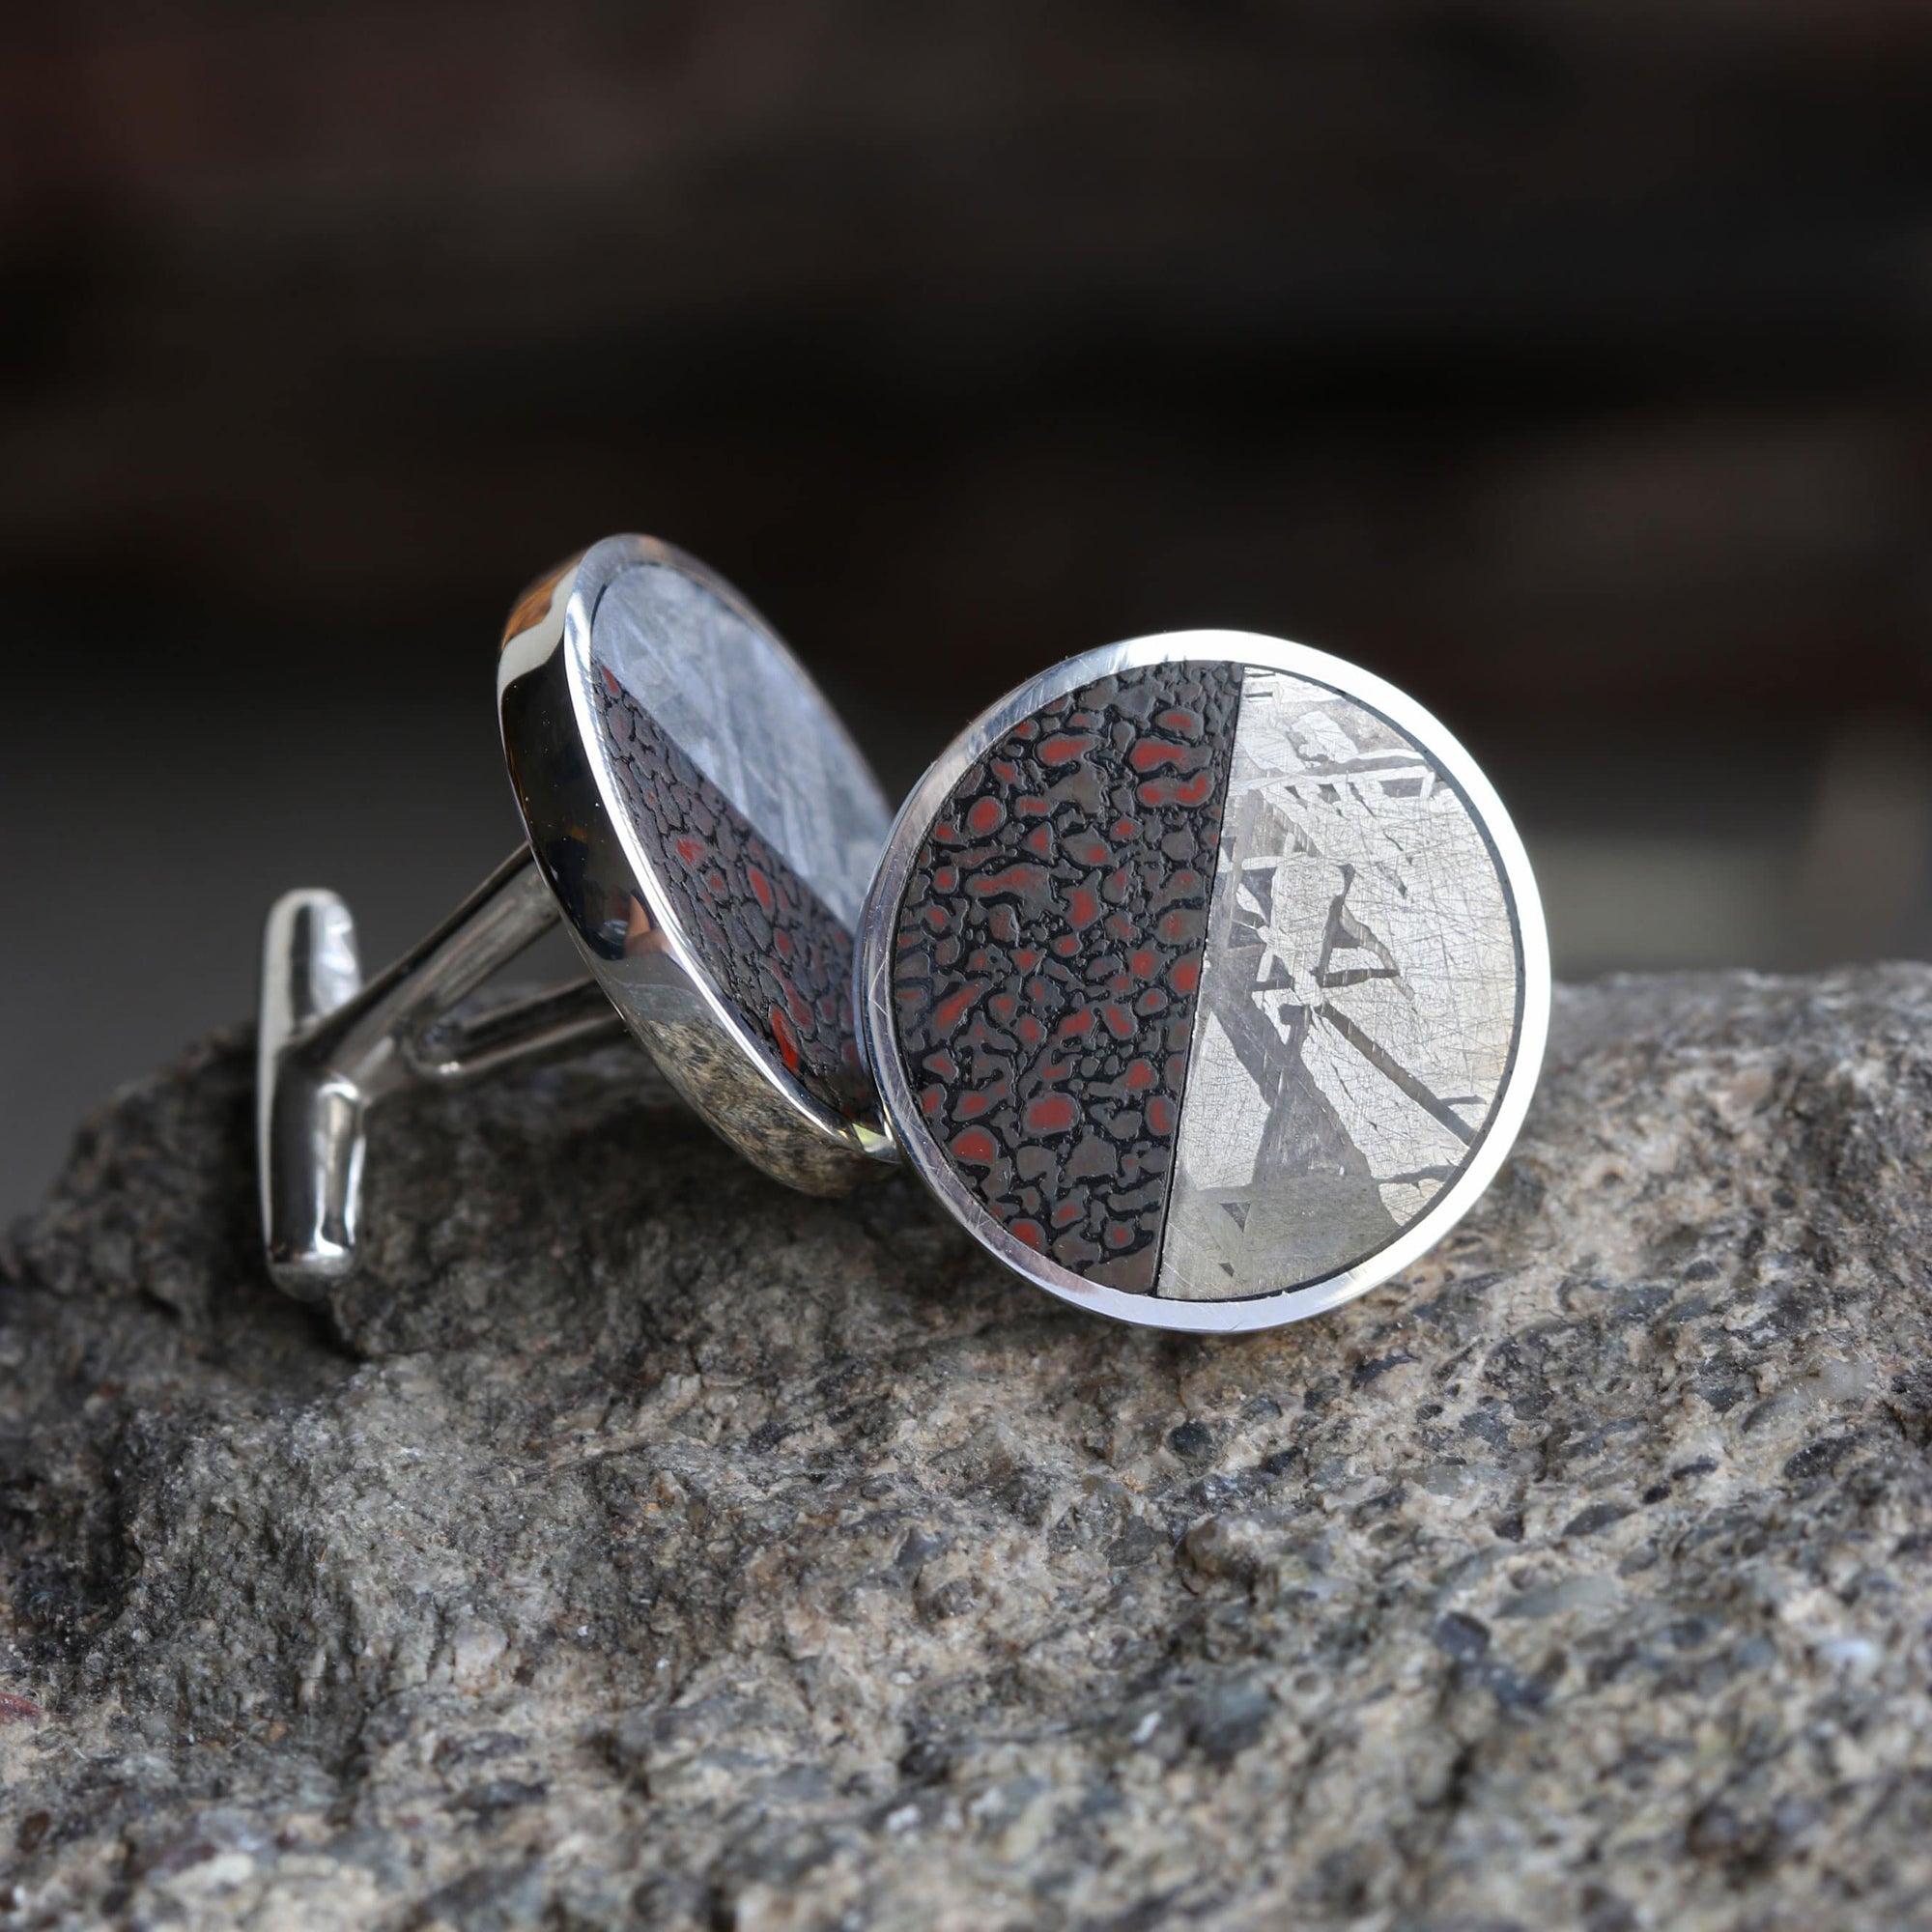 Dinosaur Fossil & Meteorite Cuff Links, In Stock-SIG3046 - Jewelry by Johan